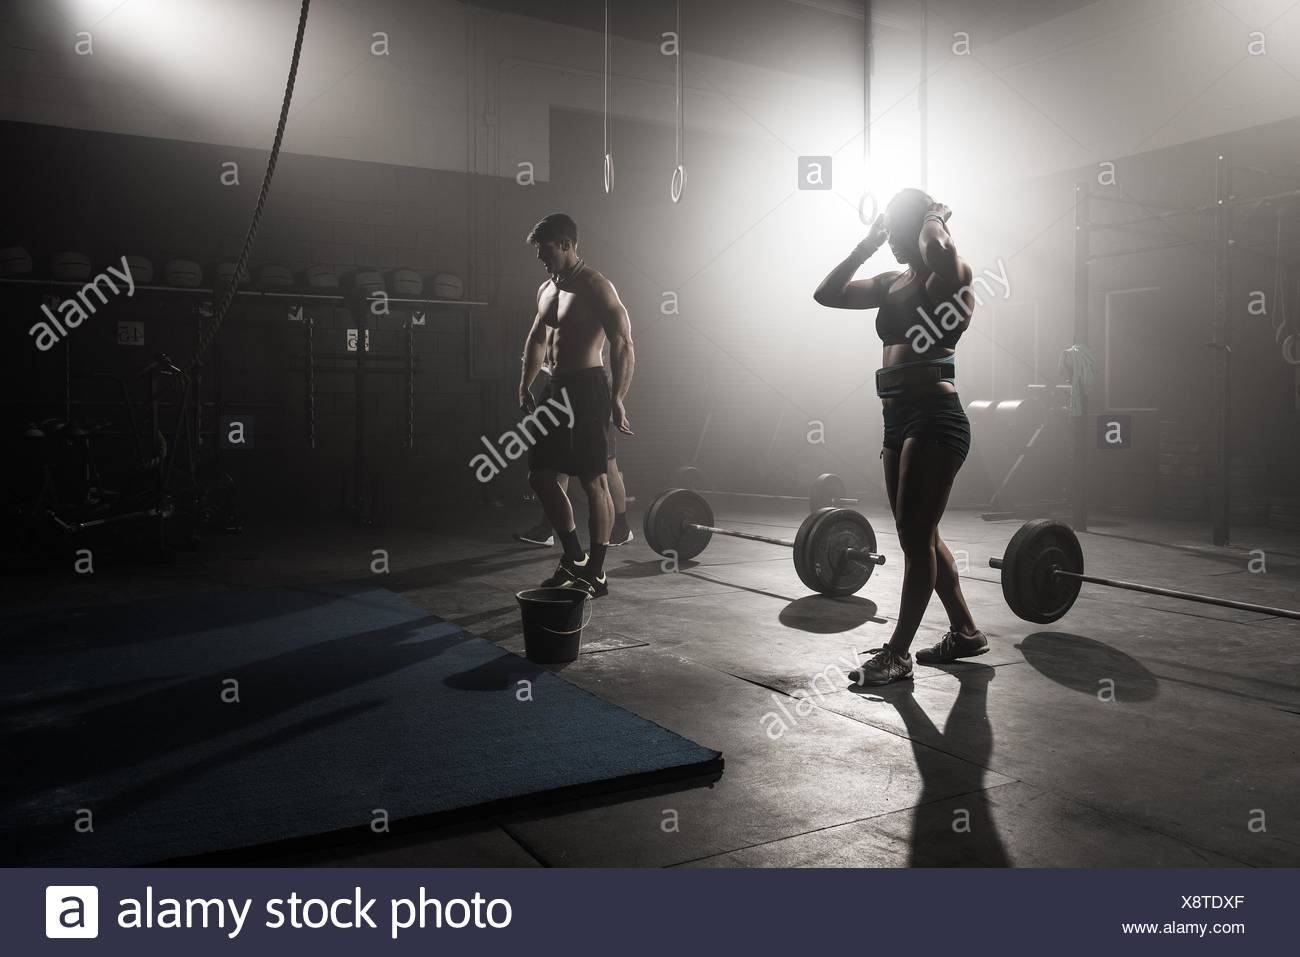 Group of people working out in gym Stock Photo